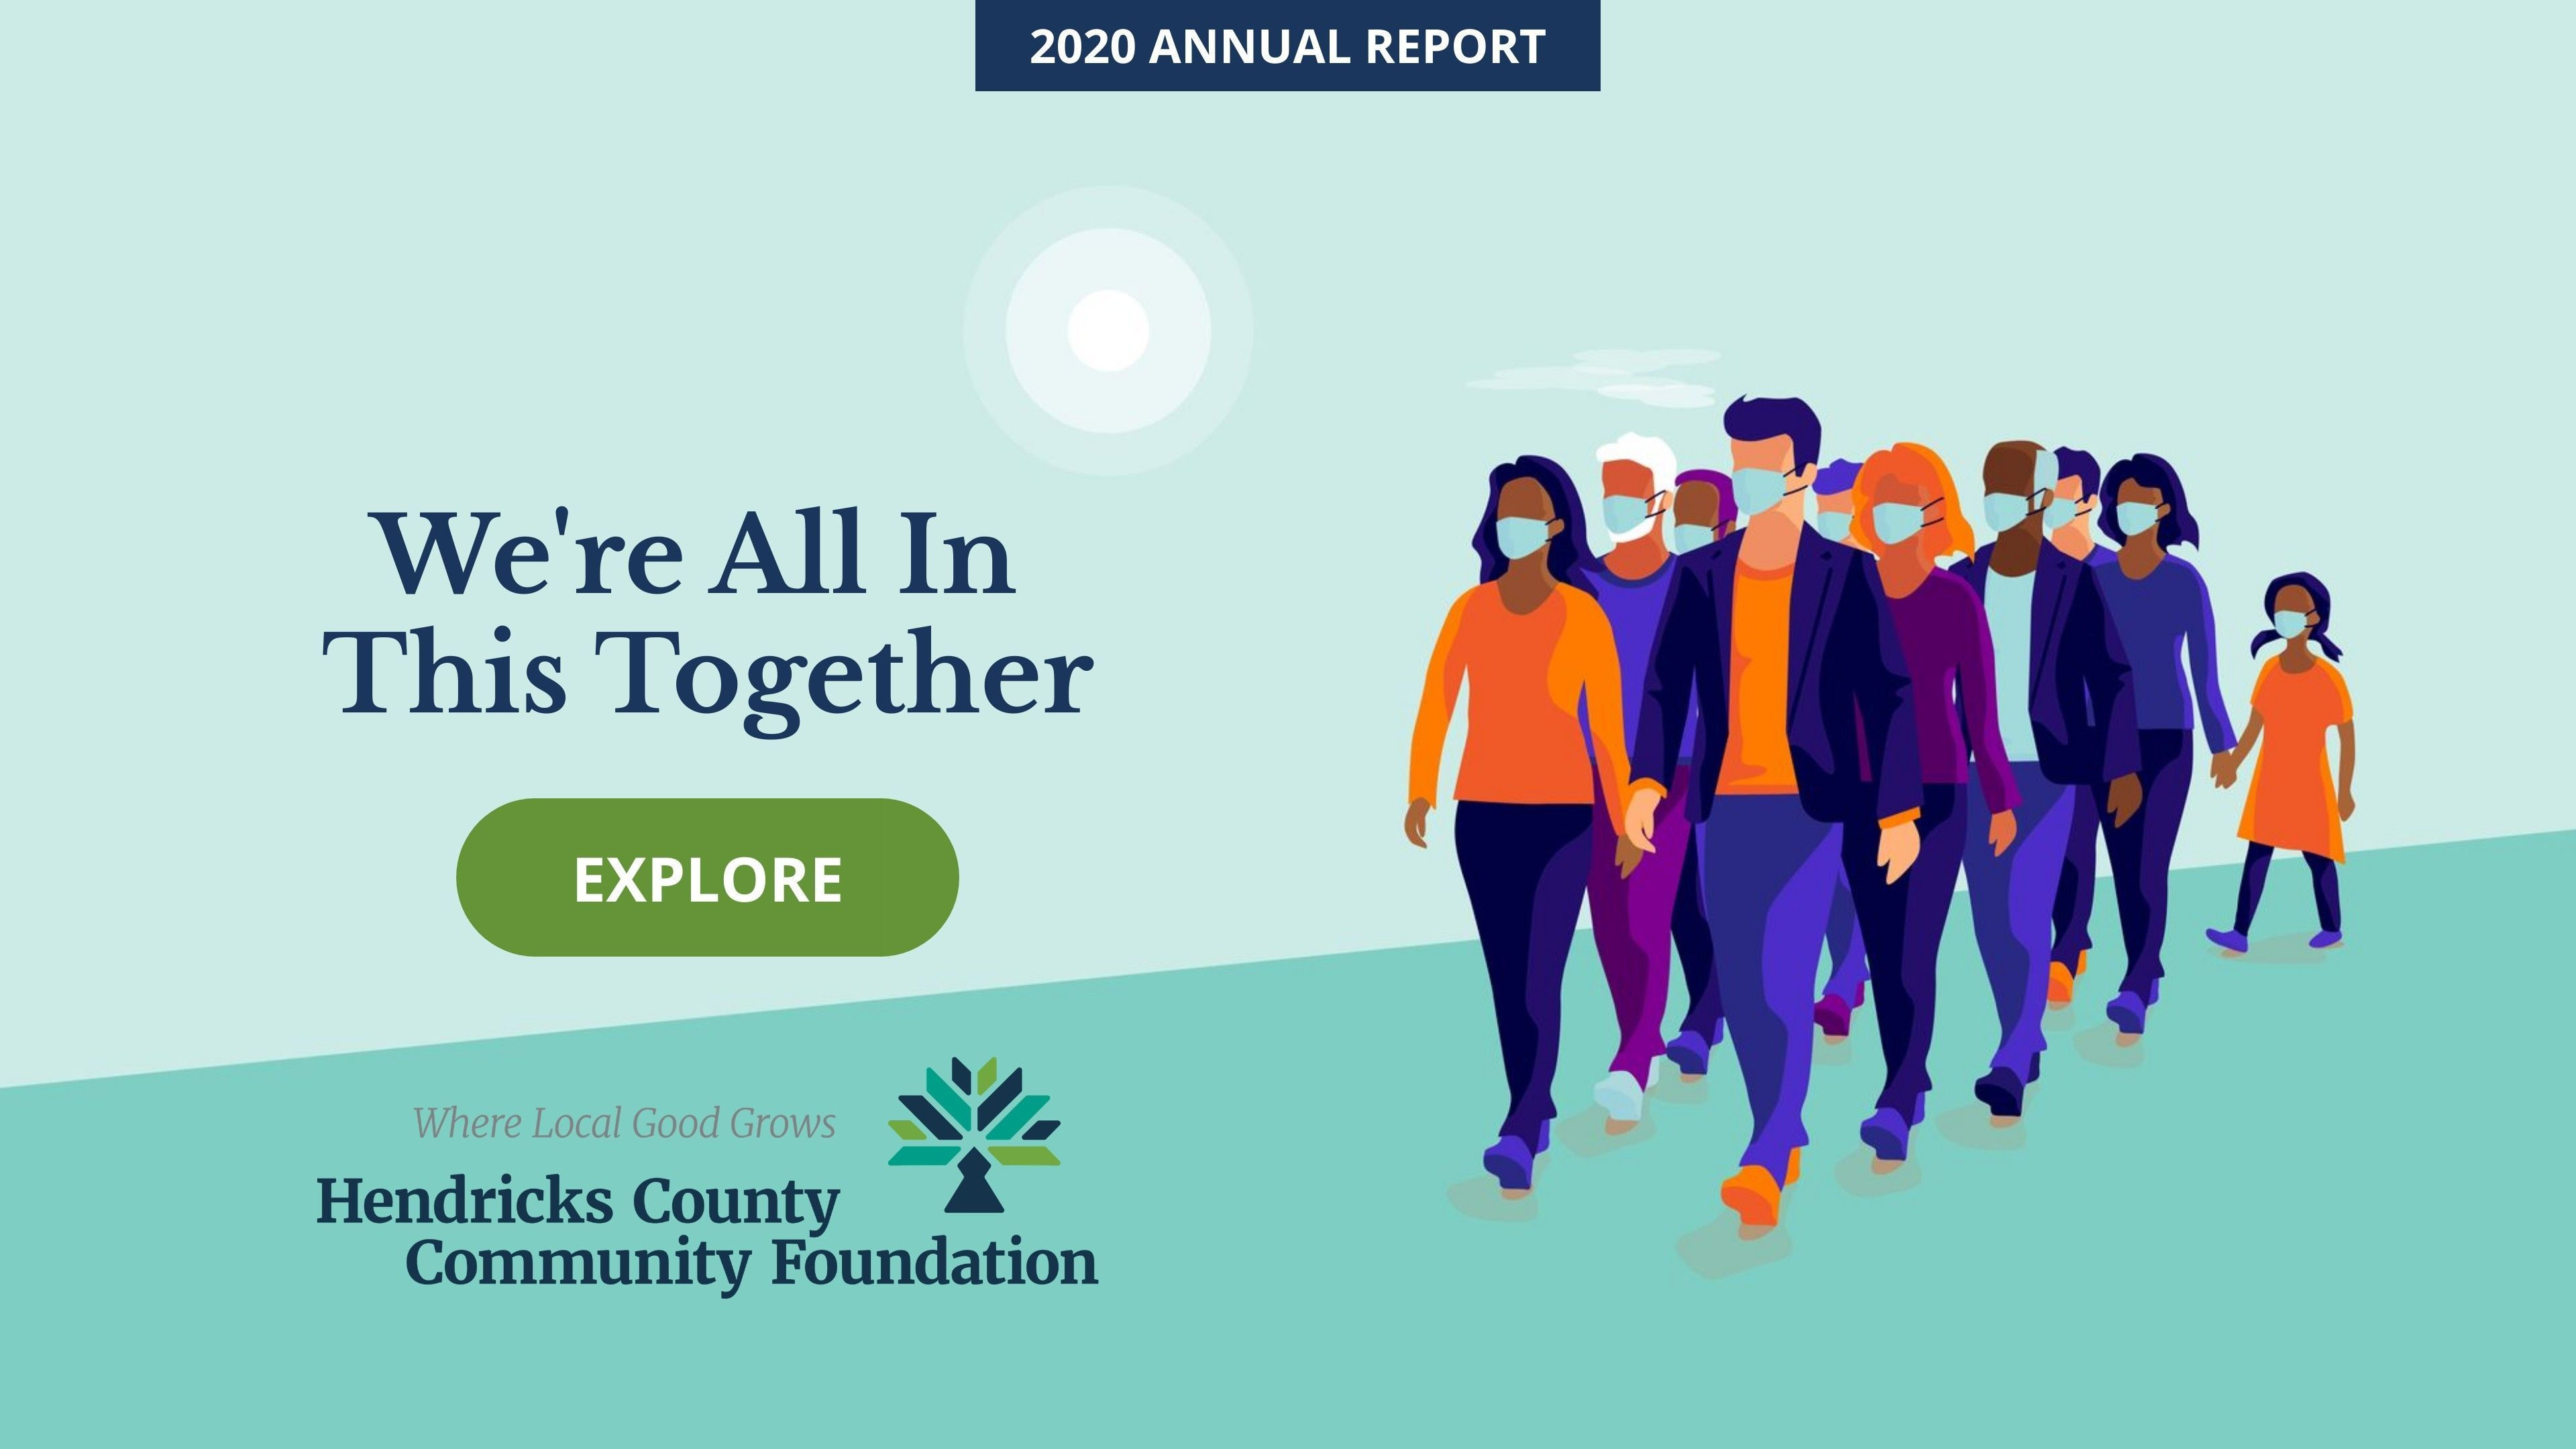 Our Annual Report is Here!